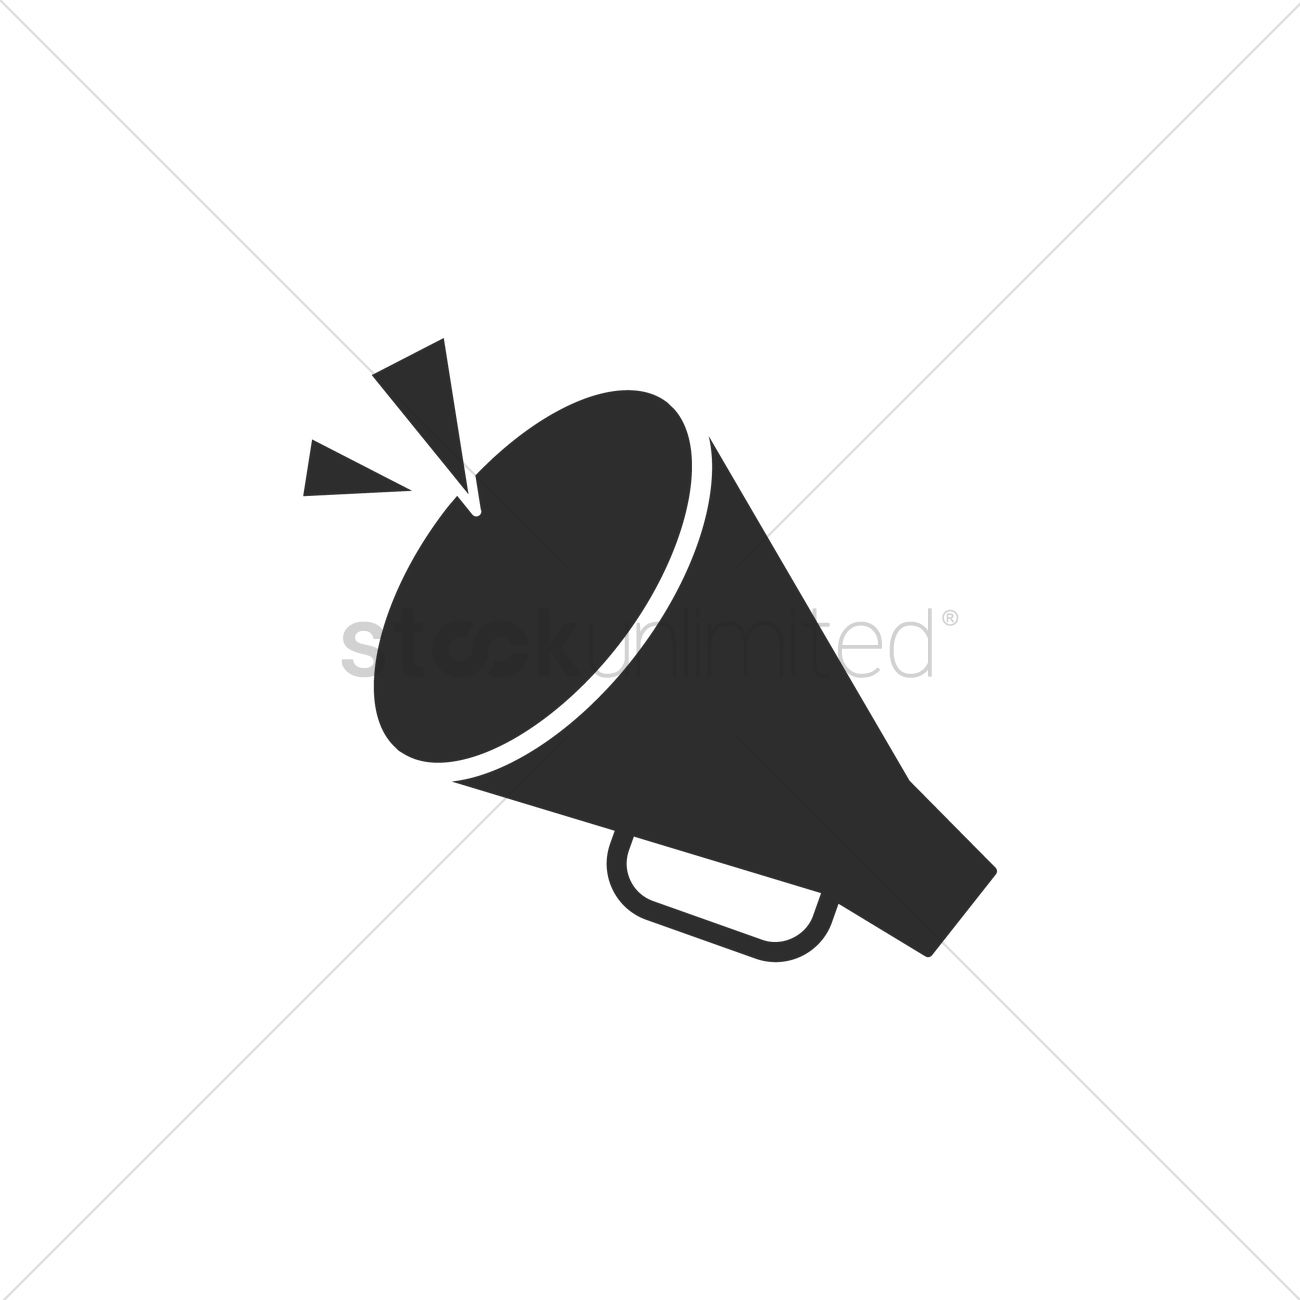 loudspeaker vector image 1982028 stockunlimited stockunlimited